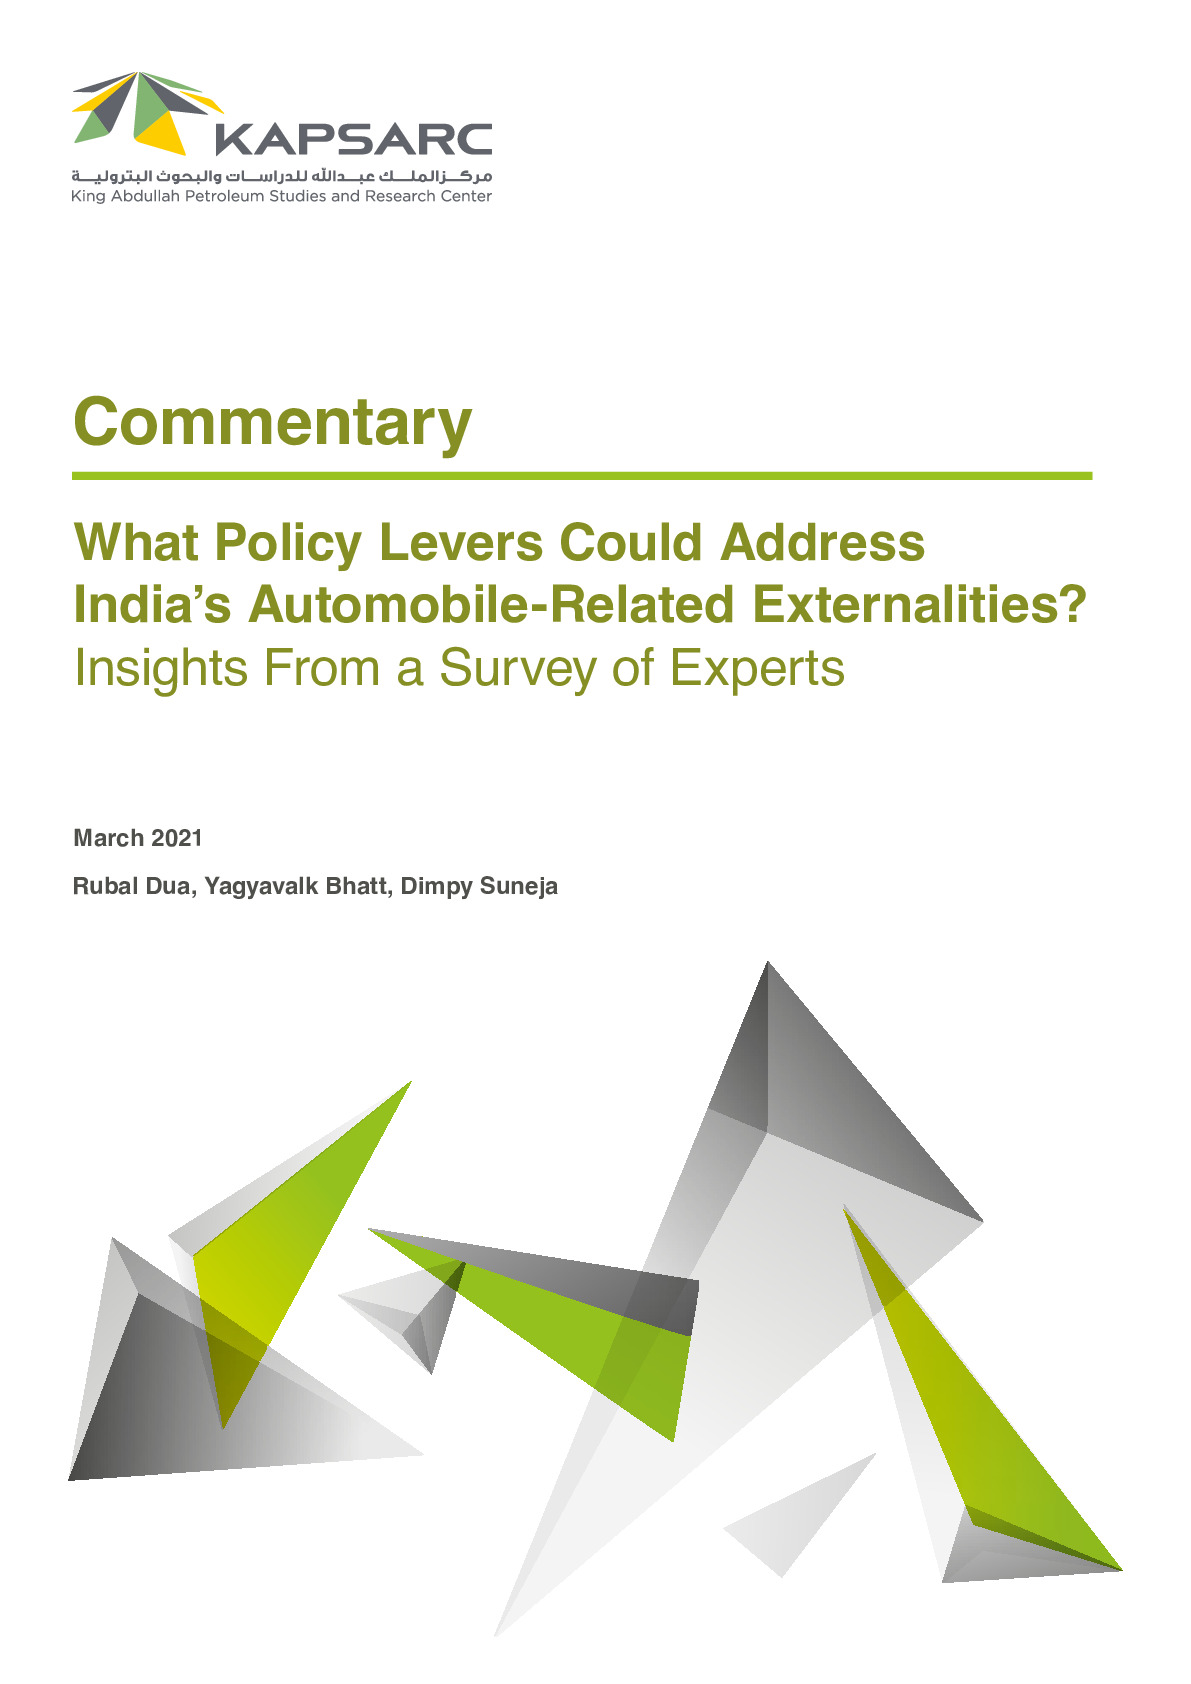 What Policy Levers Could Address India's Automobile-Related Externalities?